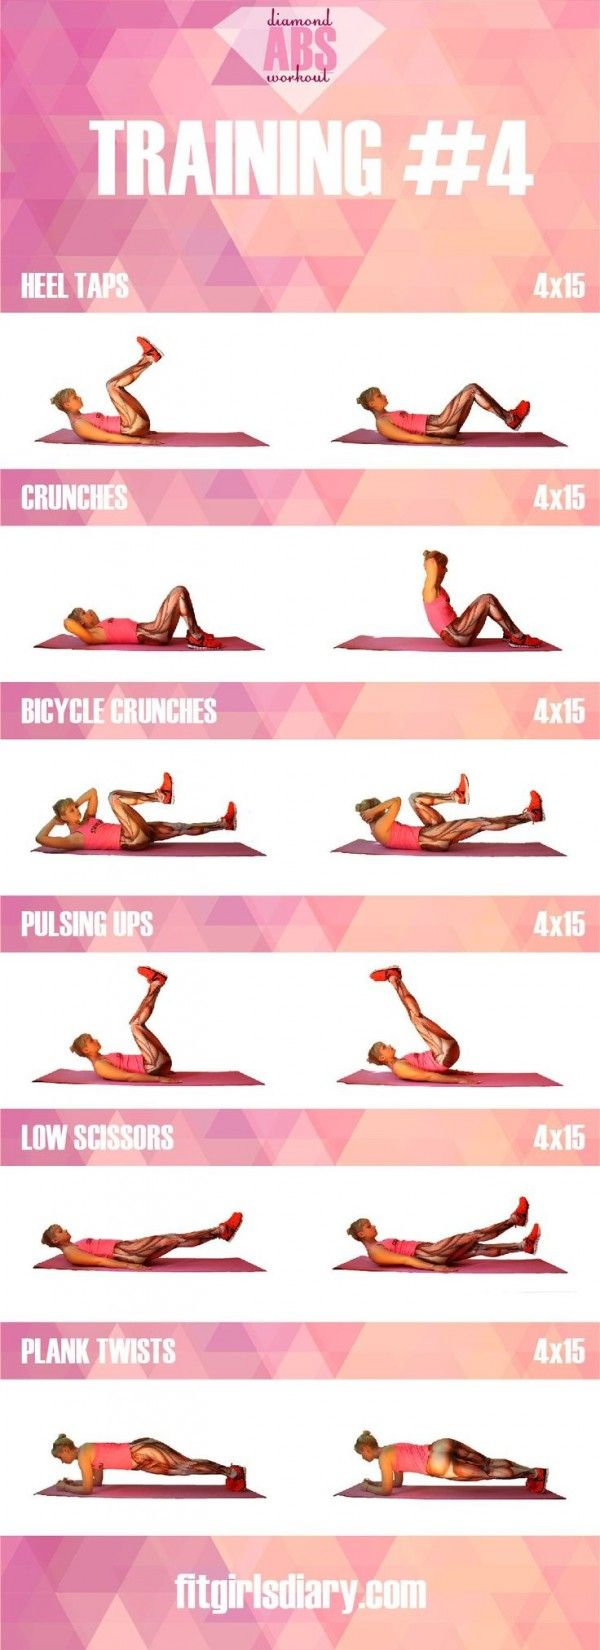 Check out the Diamond Abs #Workout